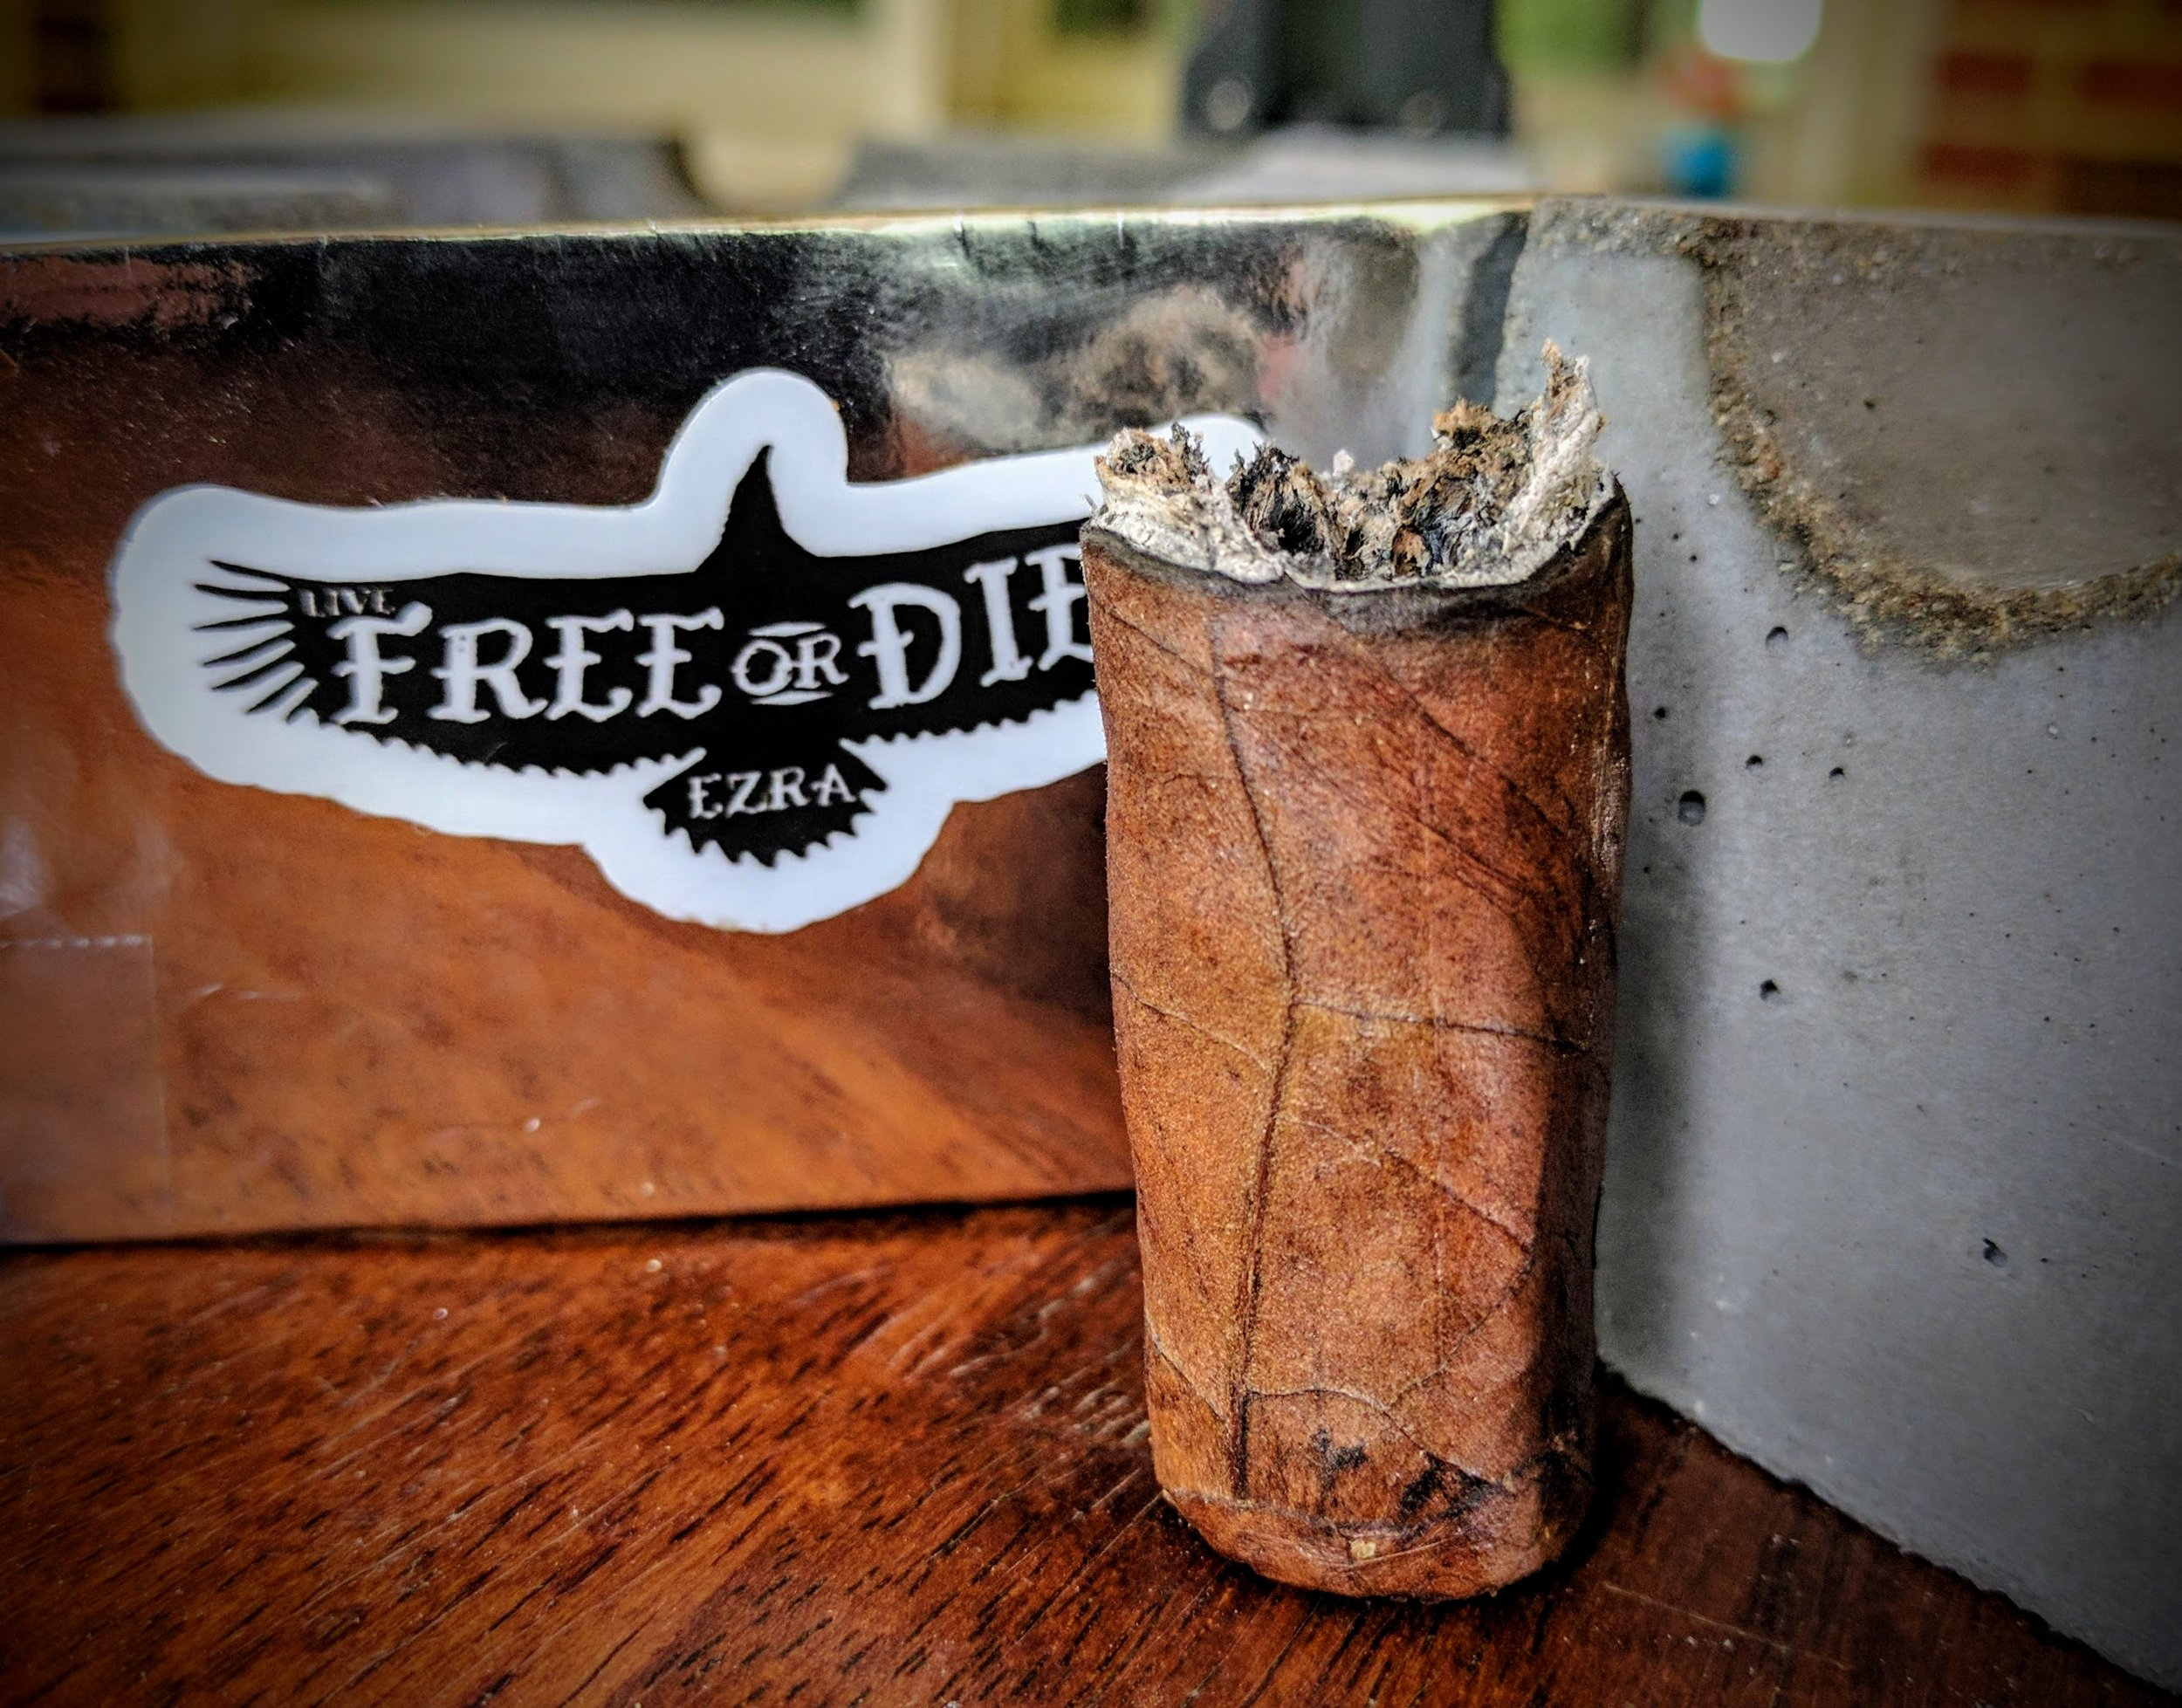 great cigar, needs more ... something.                                     8.5  /  10.0  - The Live Free or Die is meticulously made and starts out like a top-10, luxury cigar should - smooth, subtly complex flavors with a perfect draw and burn. By the time the final third hits, the flavors haven't really departed enough from that initial taste and the burn has started to become an issue. Just a little more from the tail-end of this cigar would've launched it into a different class - it would be a favorite for sure. I could've pardoned some burn issues if the flavors were out-of-this-world but sadly, they just were not. Ezra Zion promotes this as a celebratory stogie and at $12ish a stick, it warrants that class - but the flavors won't prove worthy of that status.